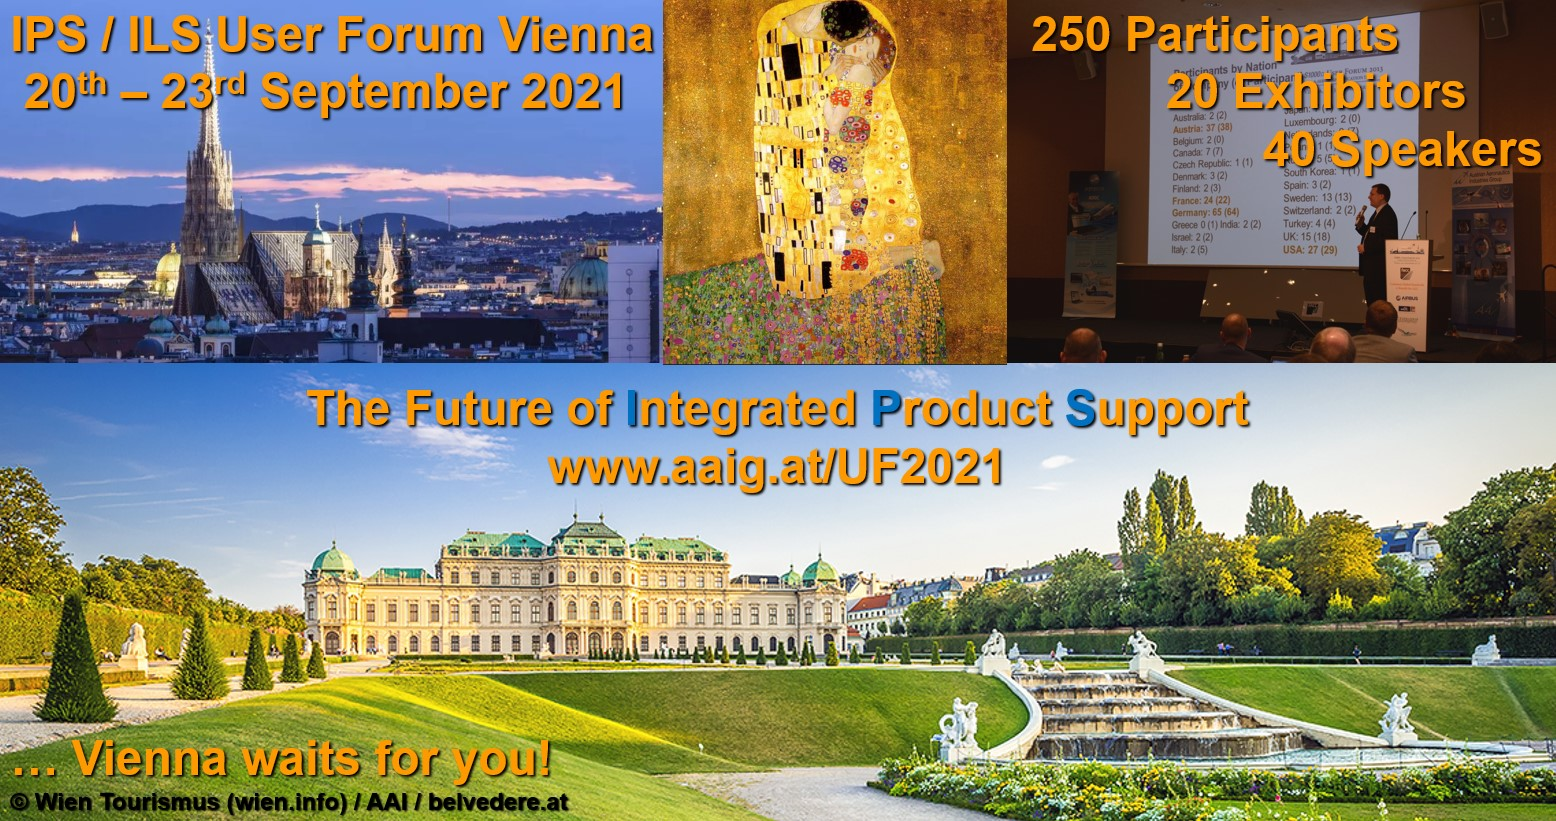 Announcement IPS/ILS User Forum Vienna 2021